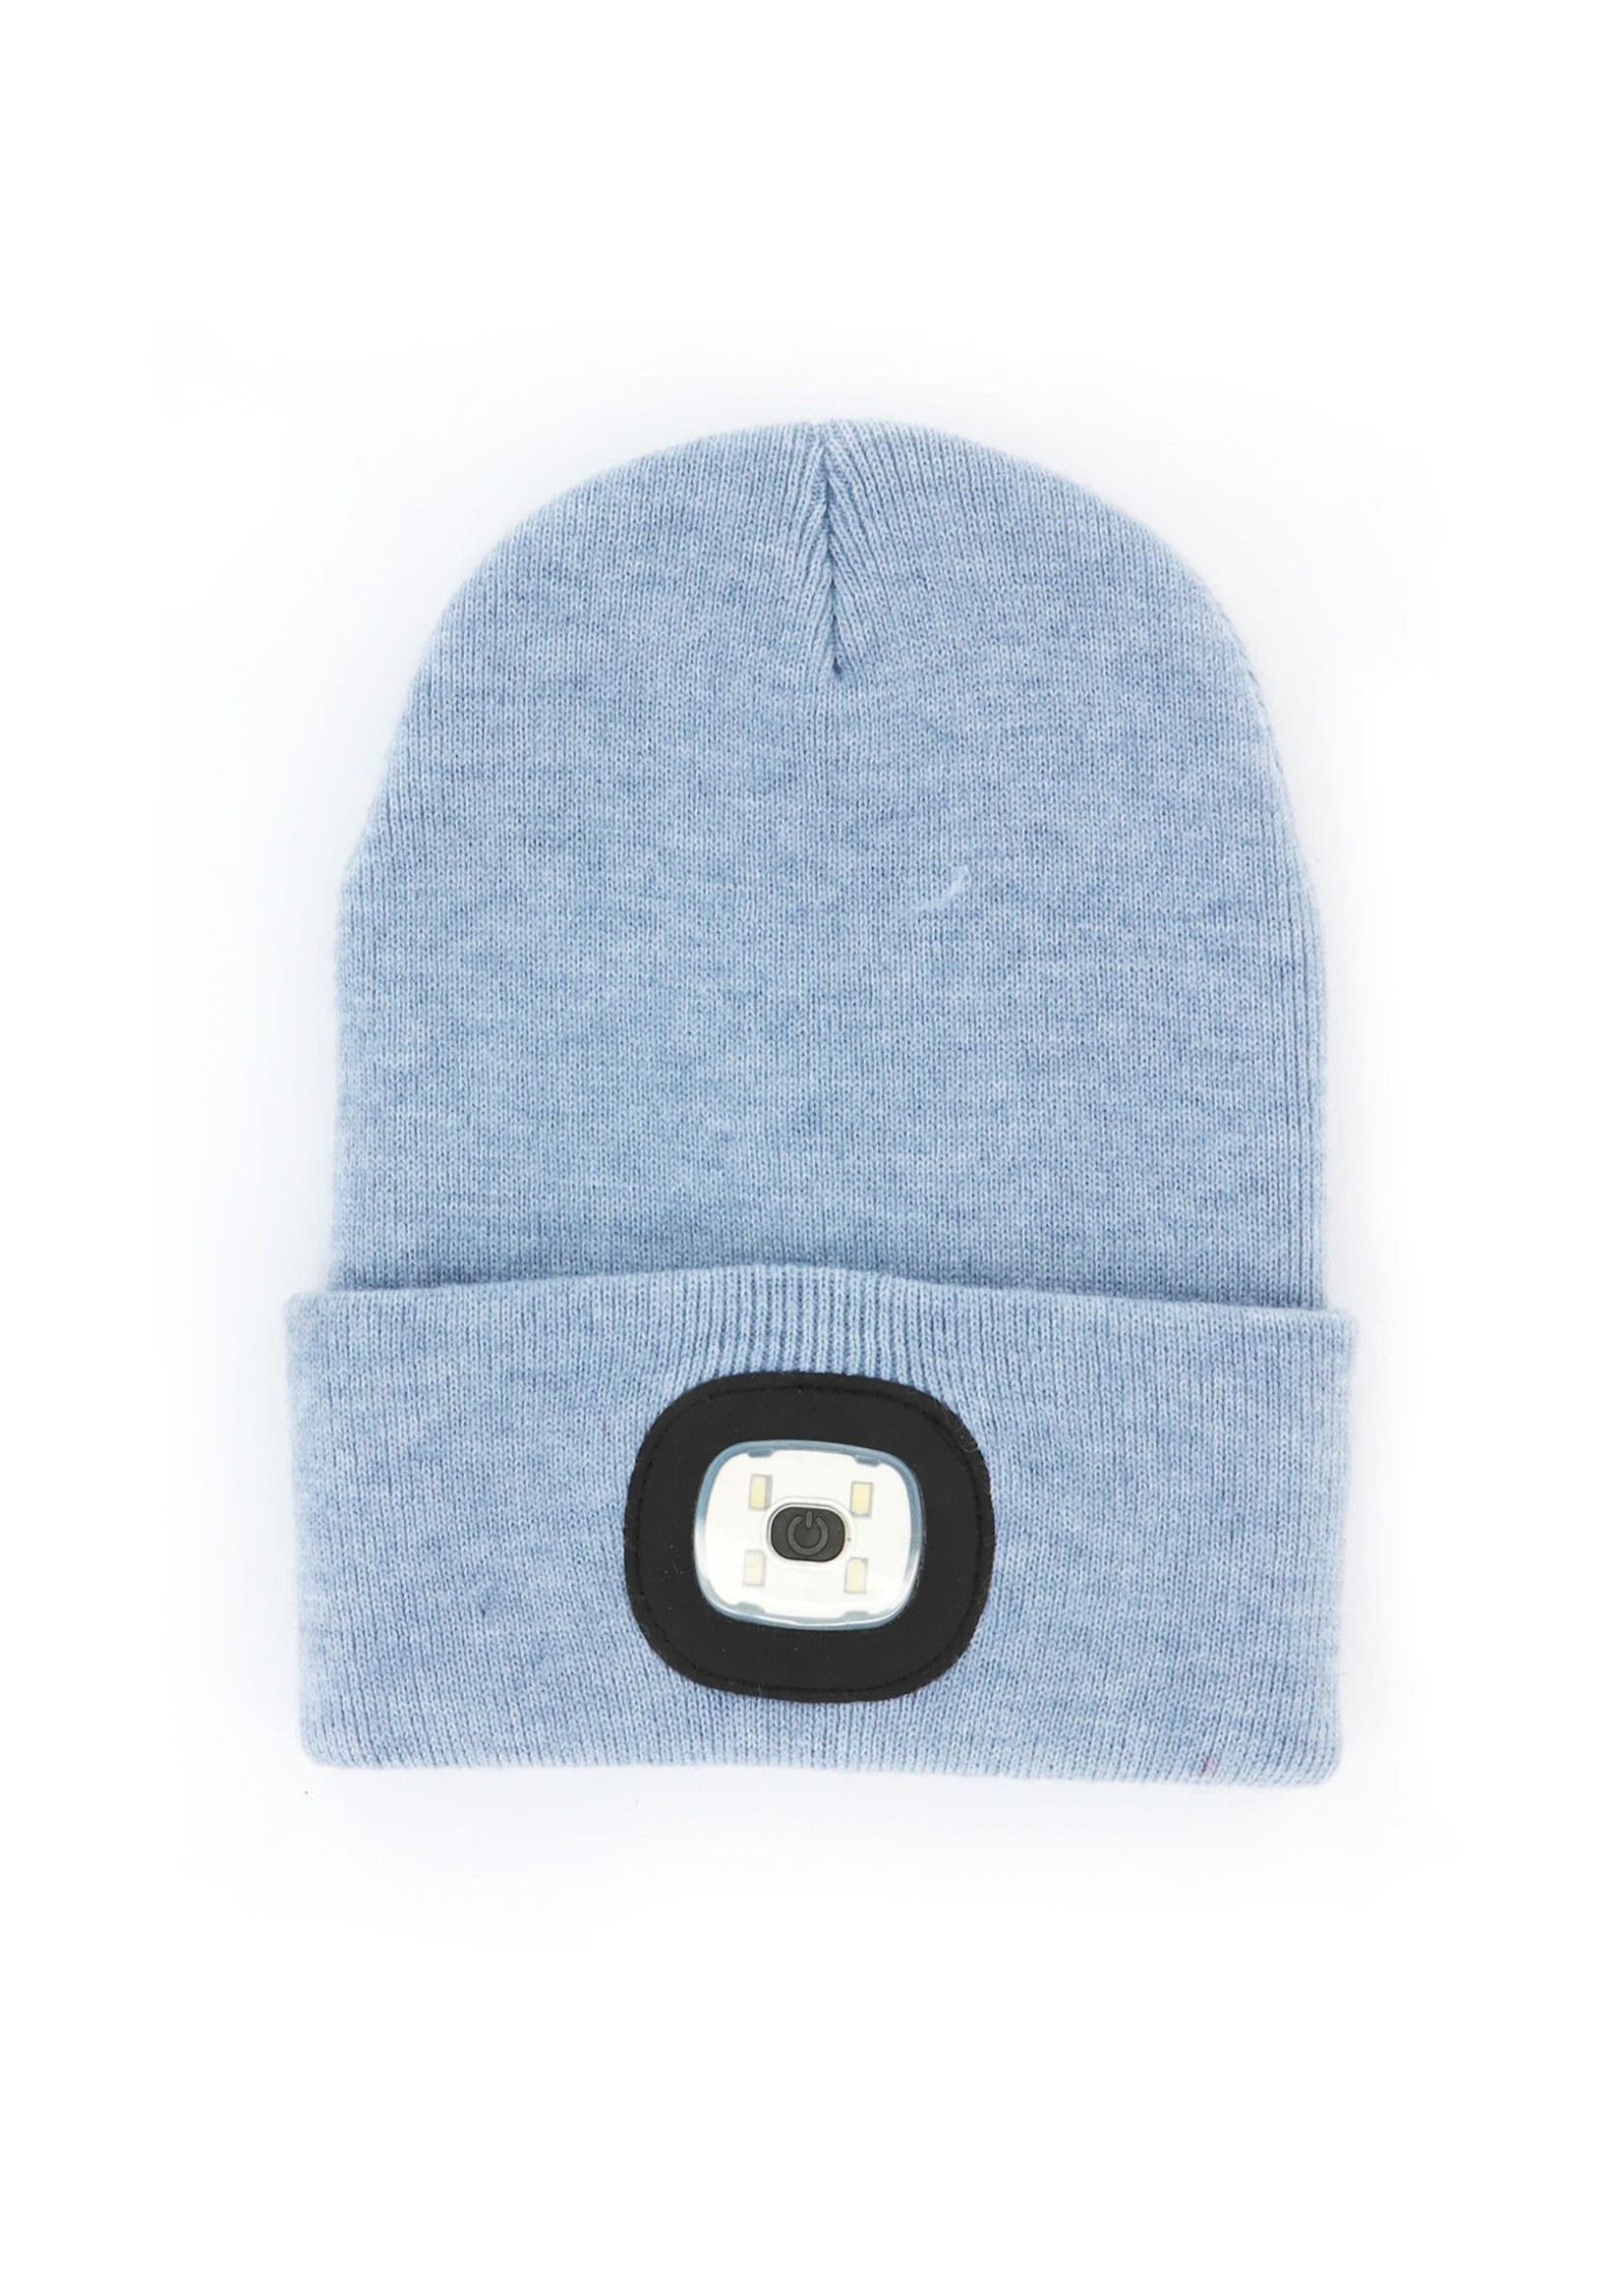 Night Scope Rechargeable LED Beanie